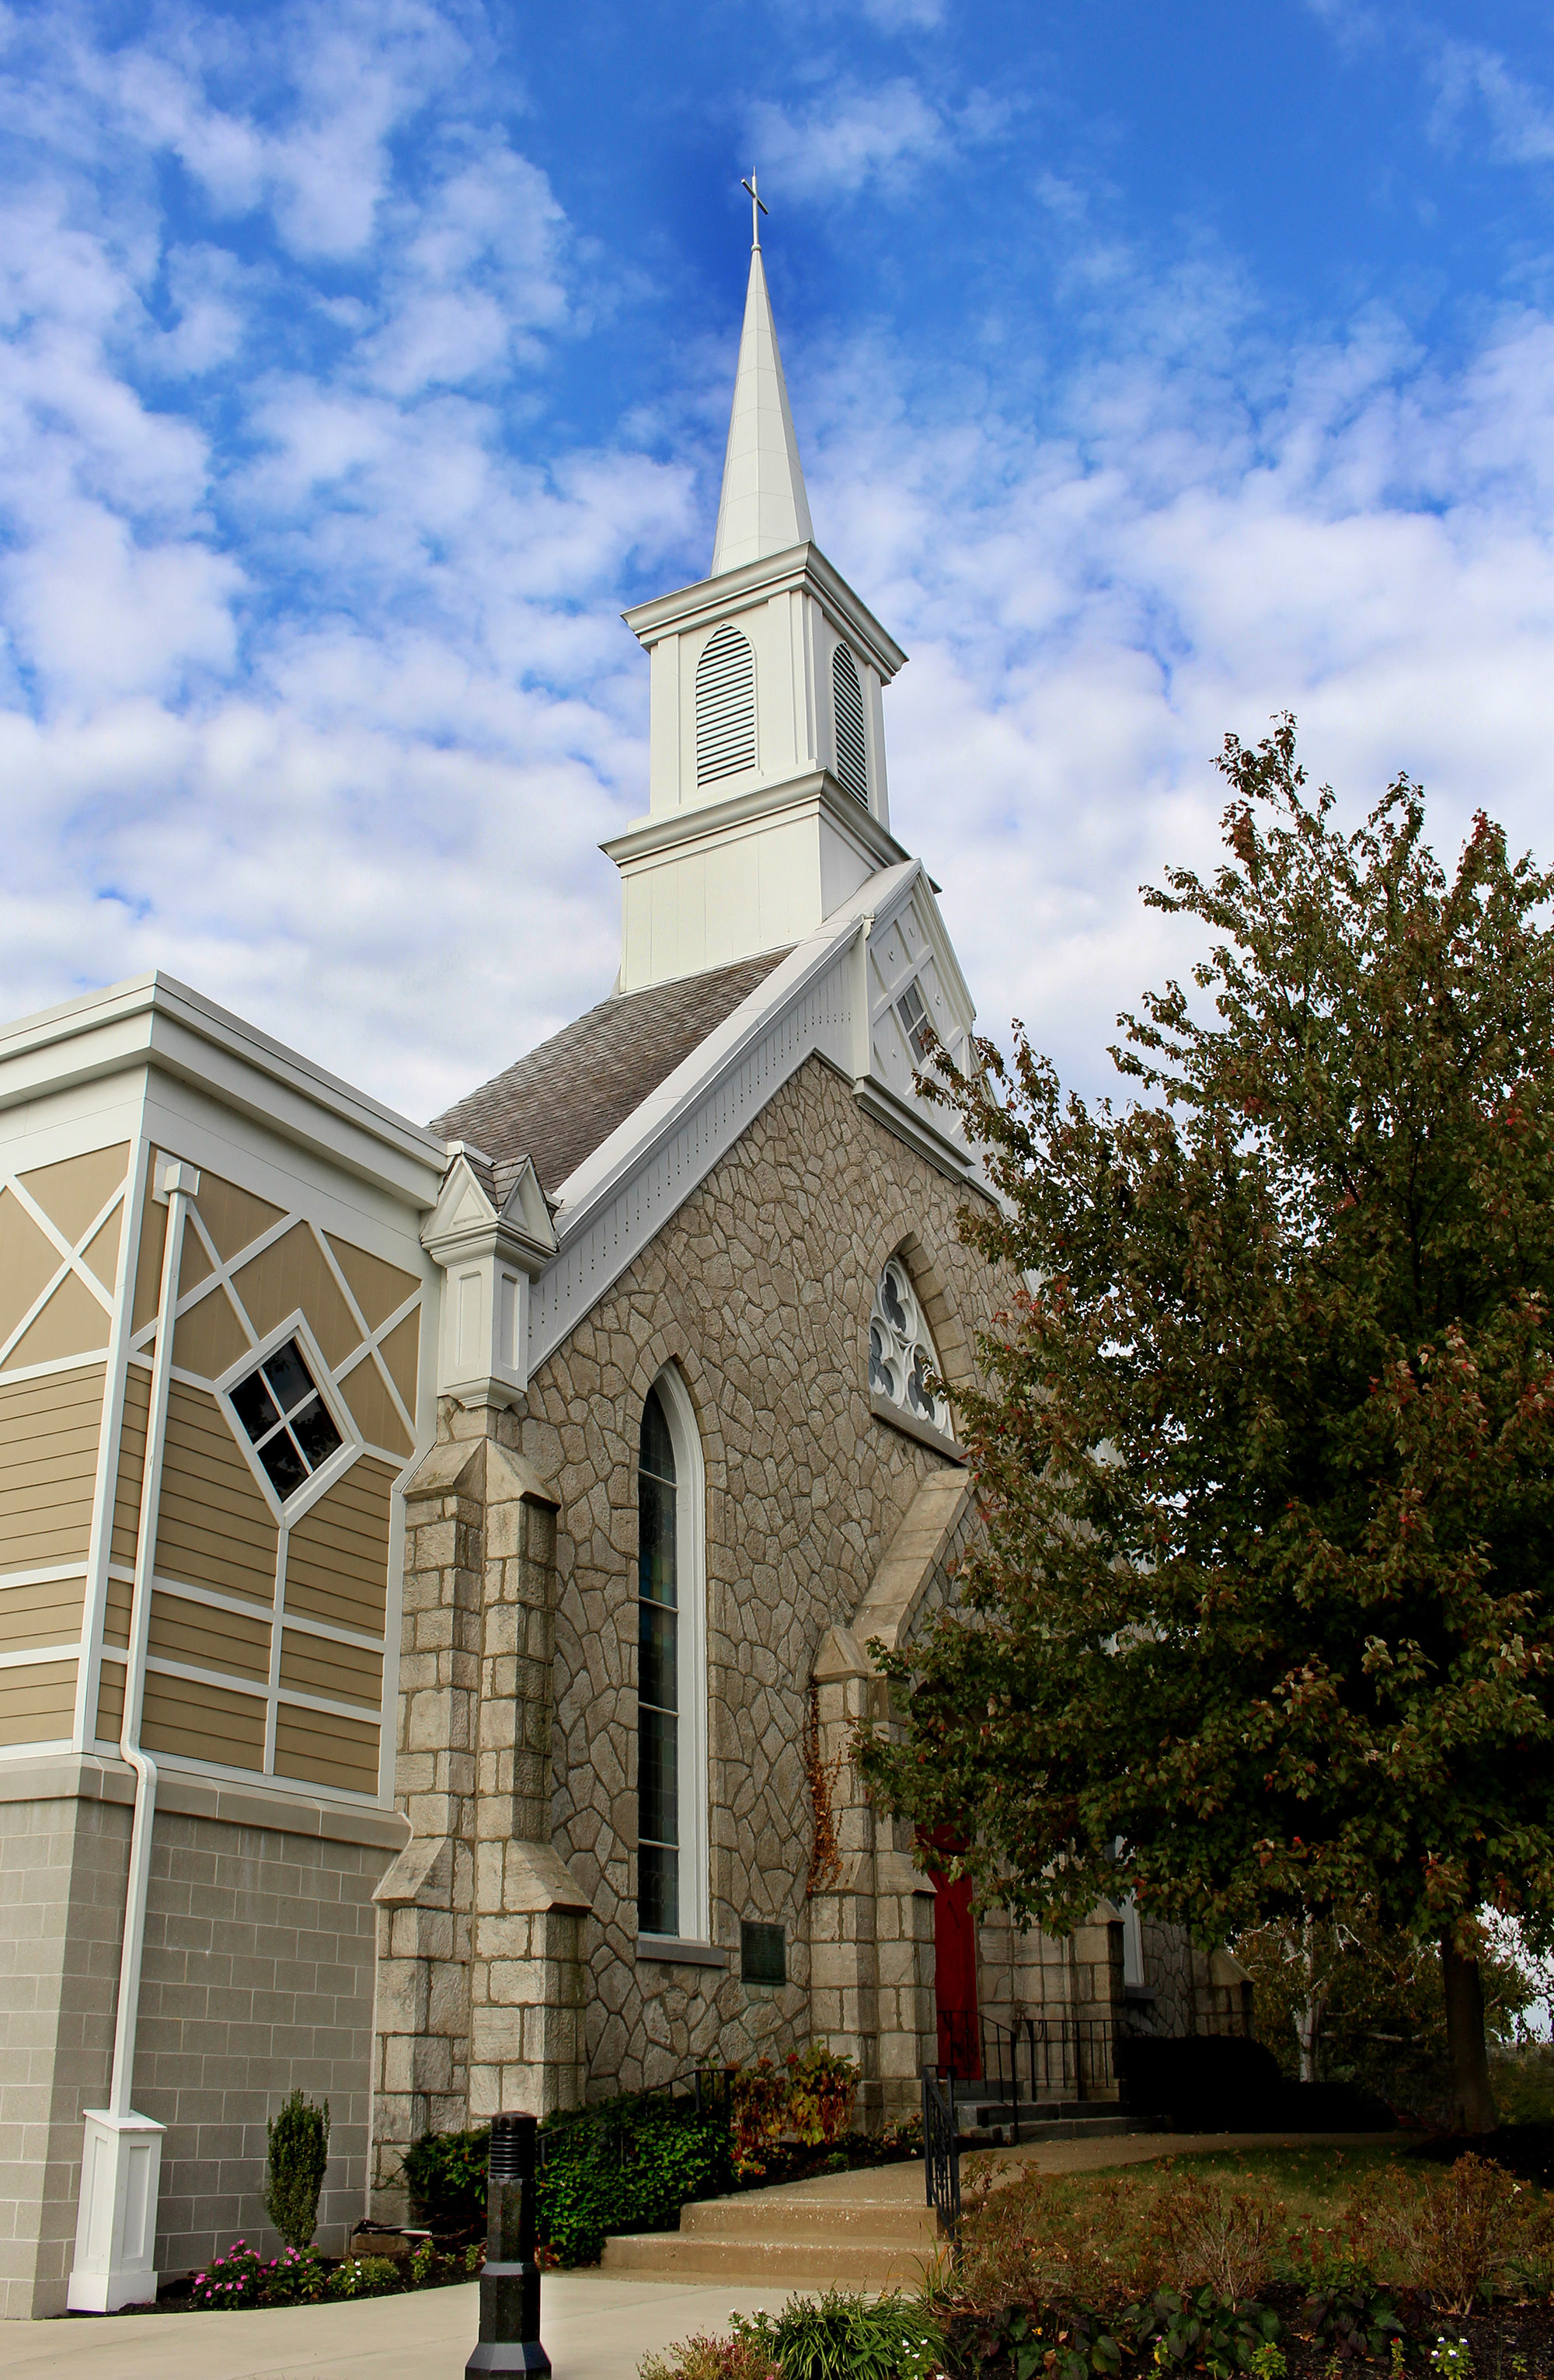 Horizontal photo of the outside of Lower Providence Presbyterian Church